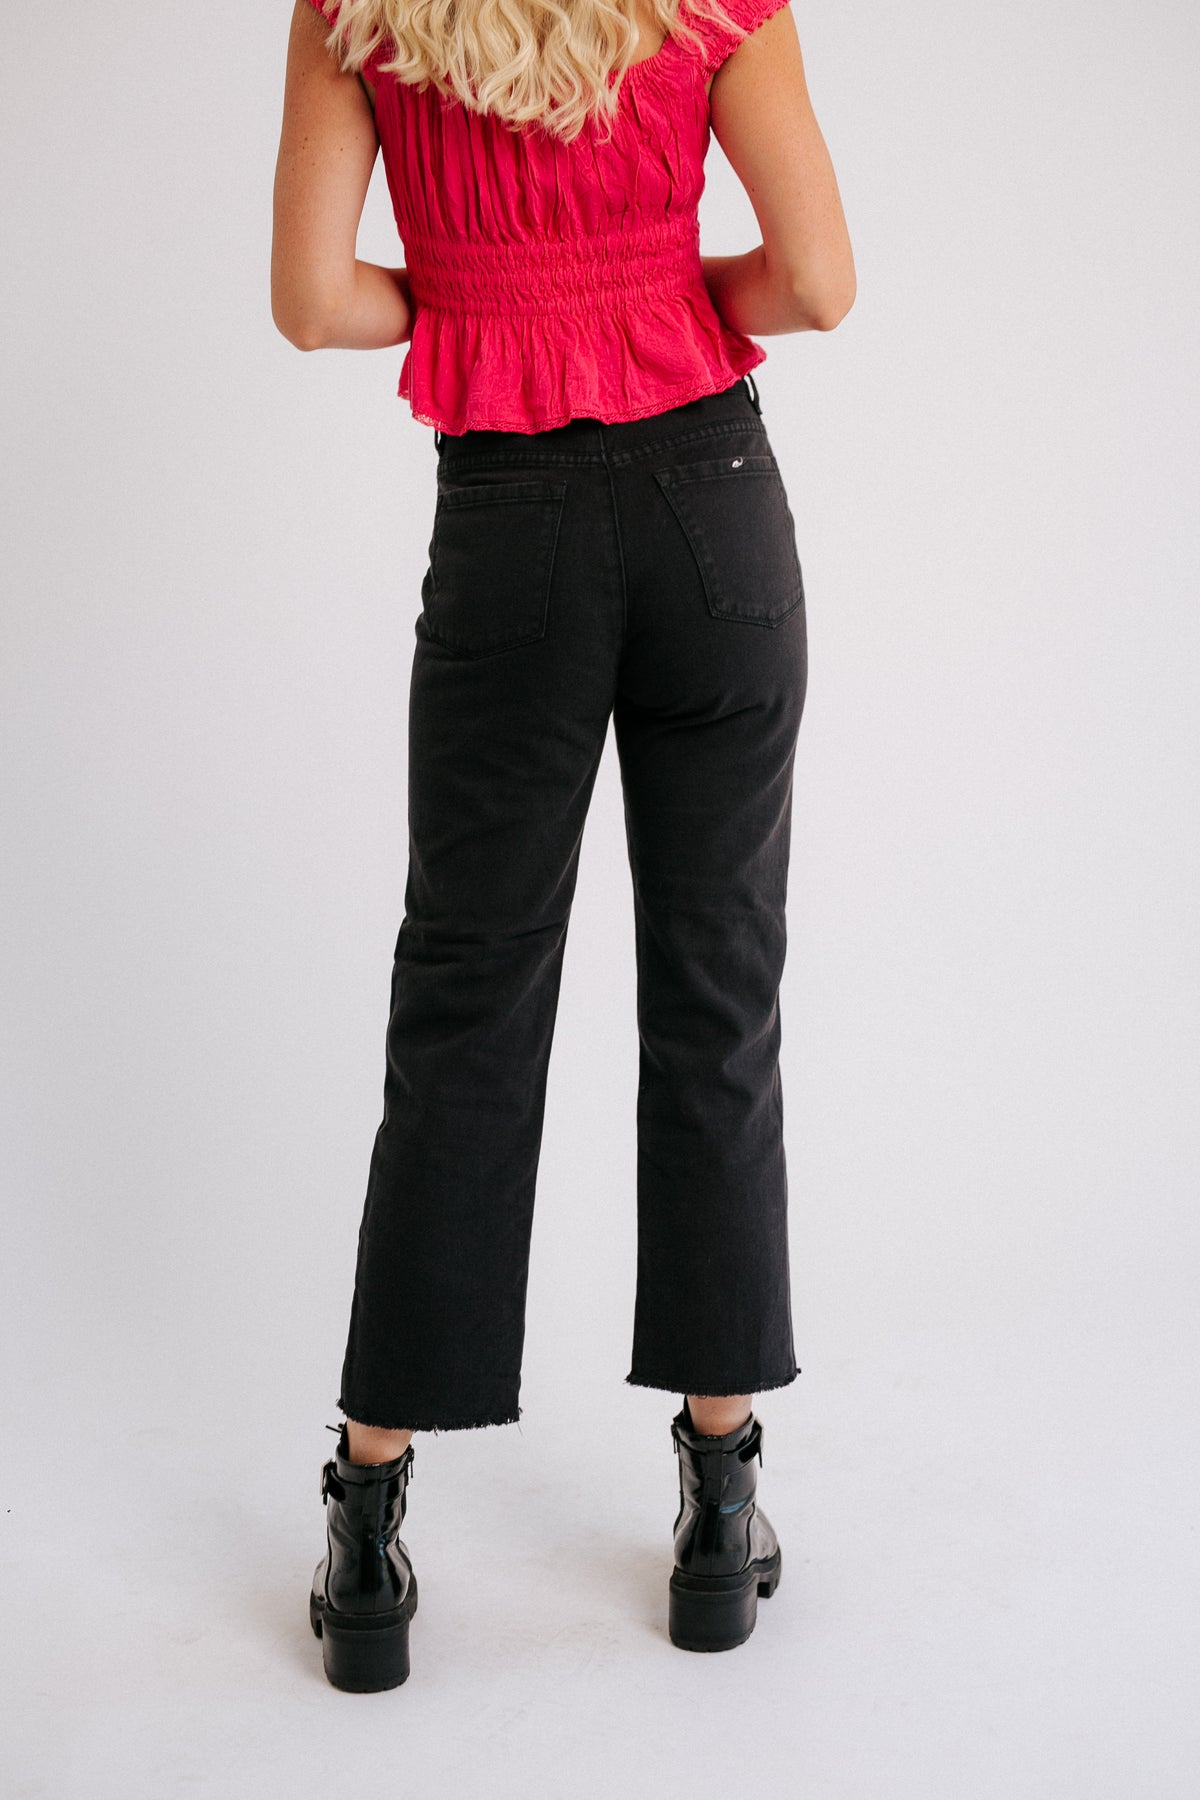 Skyline Black Denim Pant